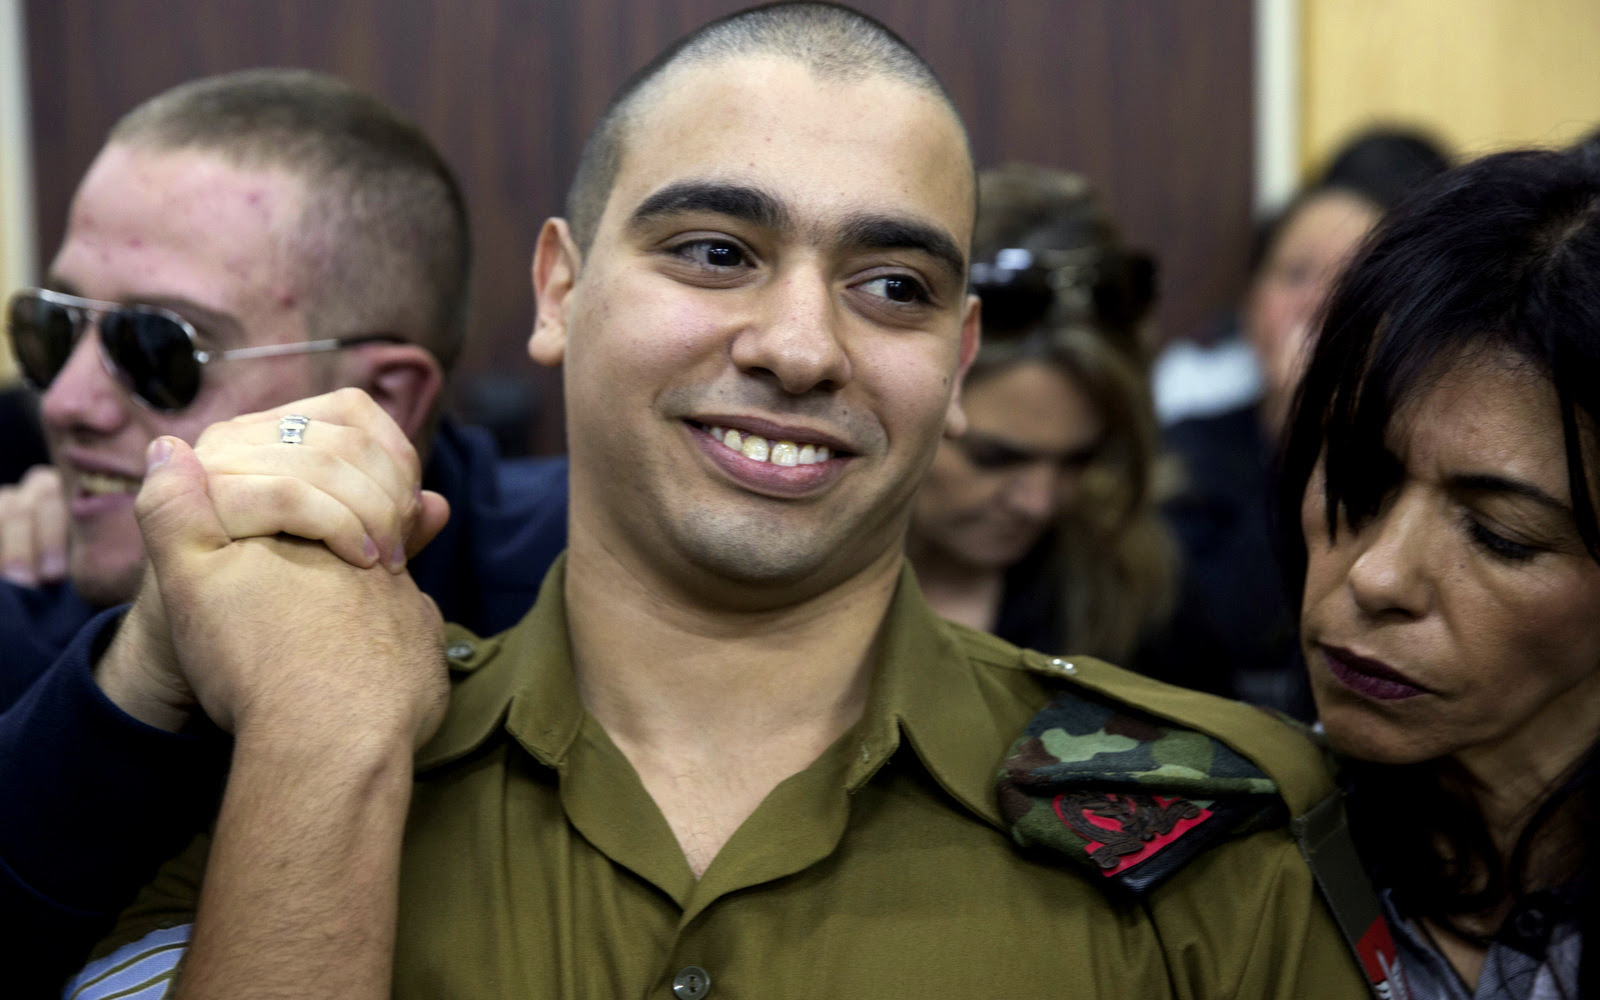 Israeli solider Sgt. Elor Azaria waits for the verdict inside the military court in Tel Aviv, Israel on Wednesday, Jan. 4, 2017. (AP/Heidi Levine).